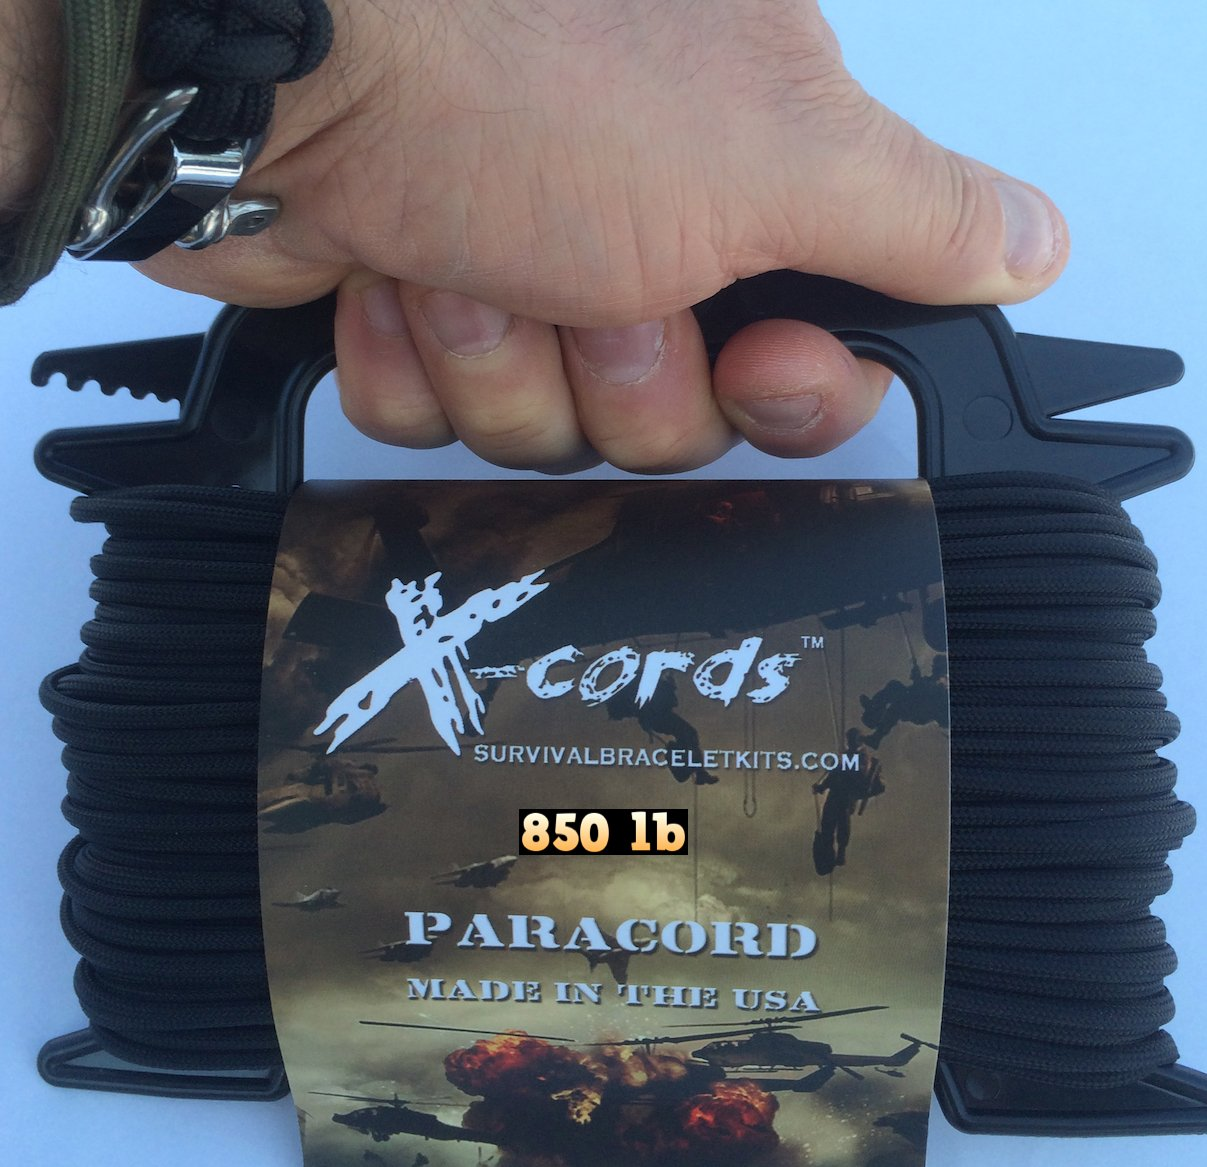 X-CORDS Paracord 850 Lb Stronger Than 550 and 750 Made by Us Government Certified Contractor (100' Black ON Spool) by X-CORDS (Image #3)